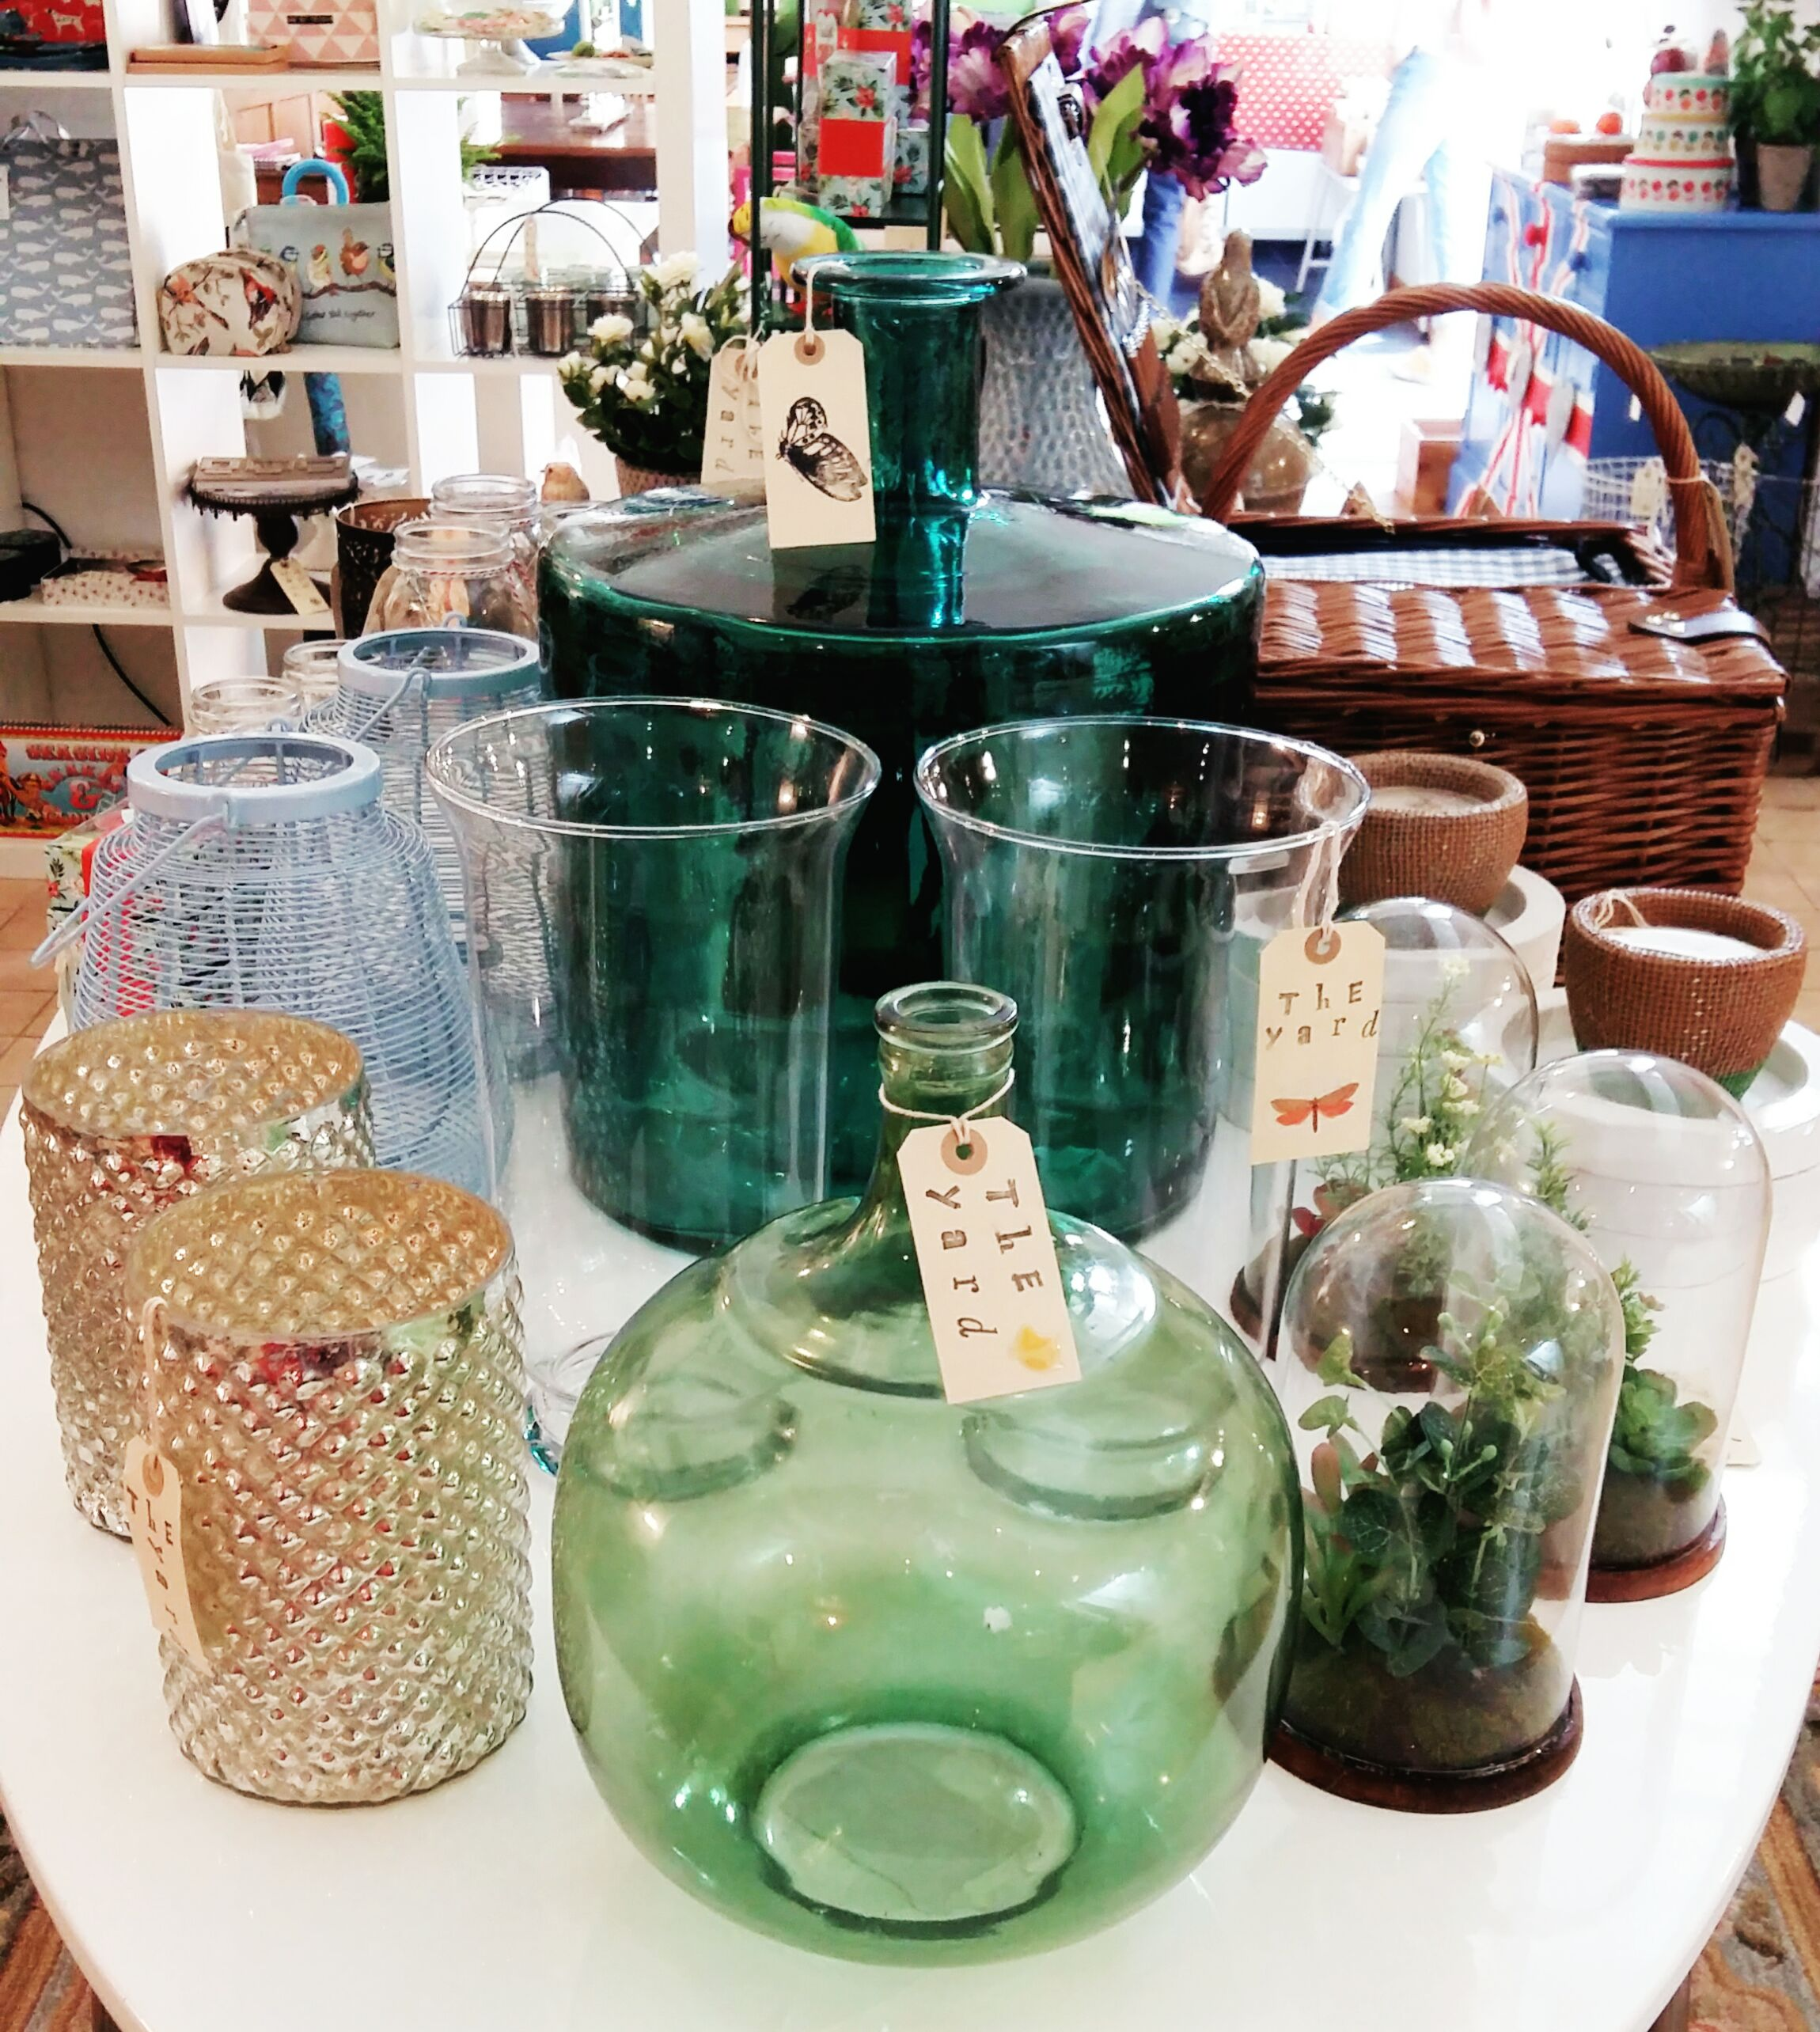 Lots of glassware in all shapes and sizes